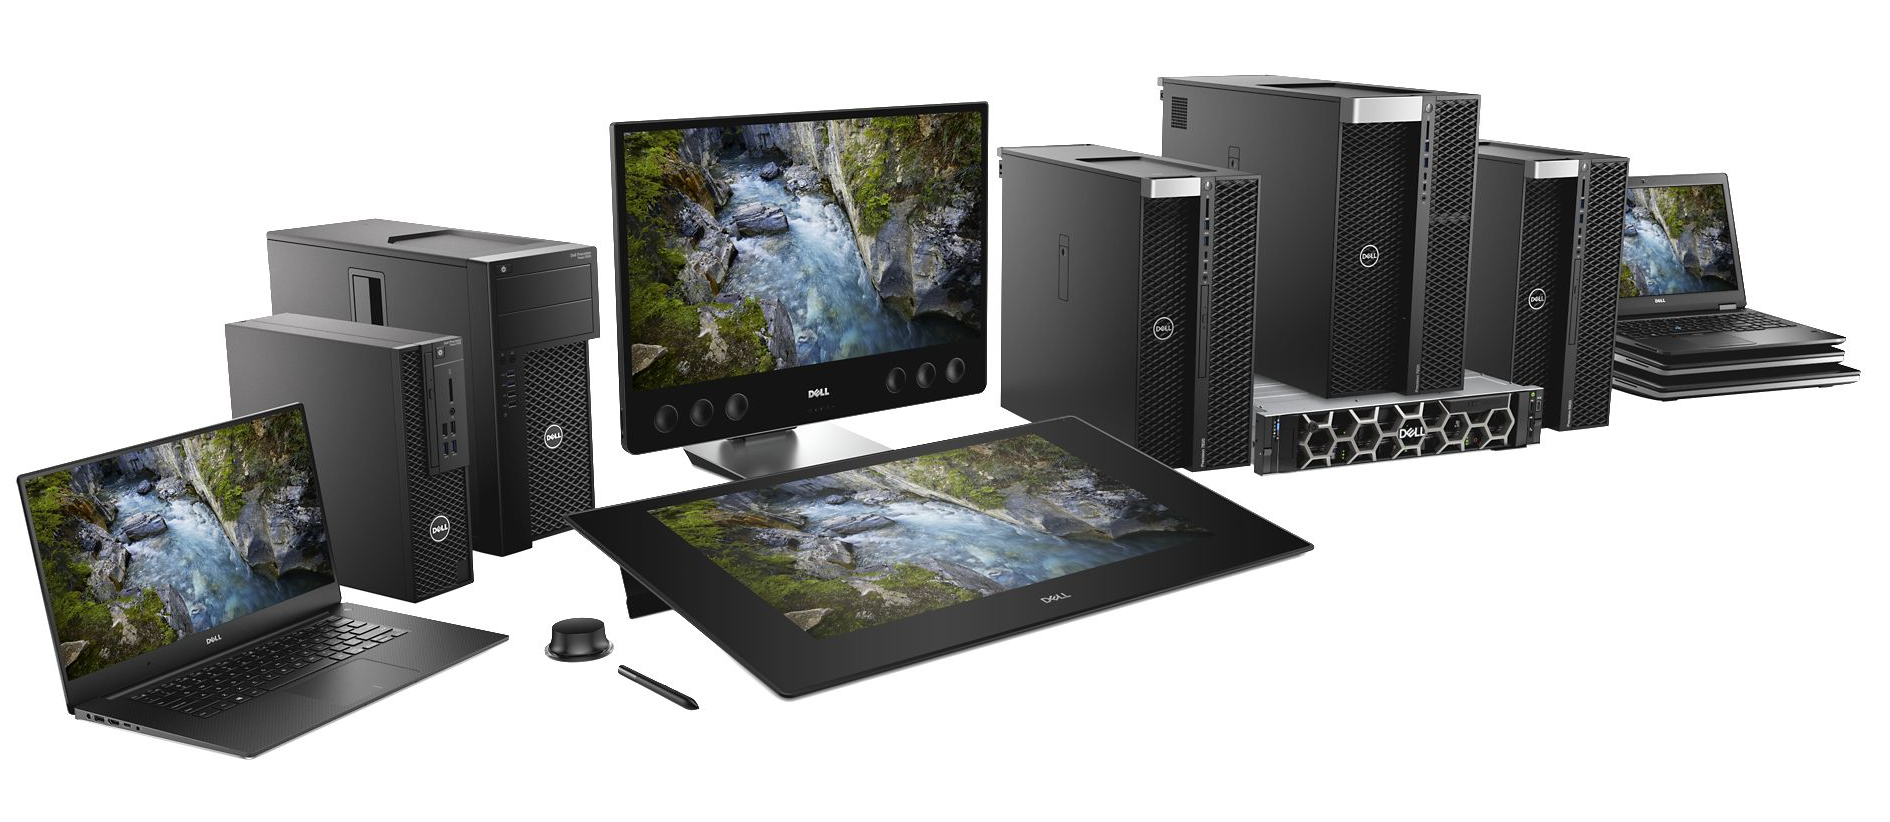 Z-Series-Workstation-Family-ubermacomputer.com-pusat-cpu-branded-second.png